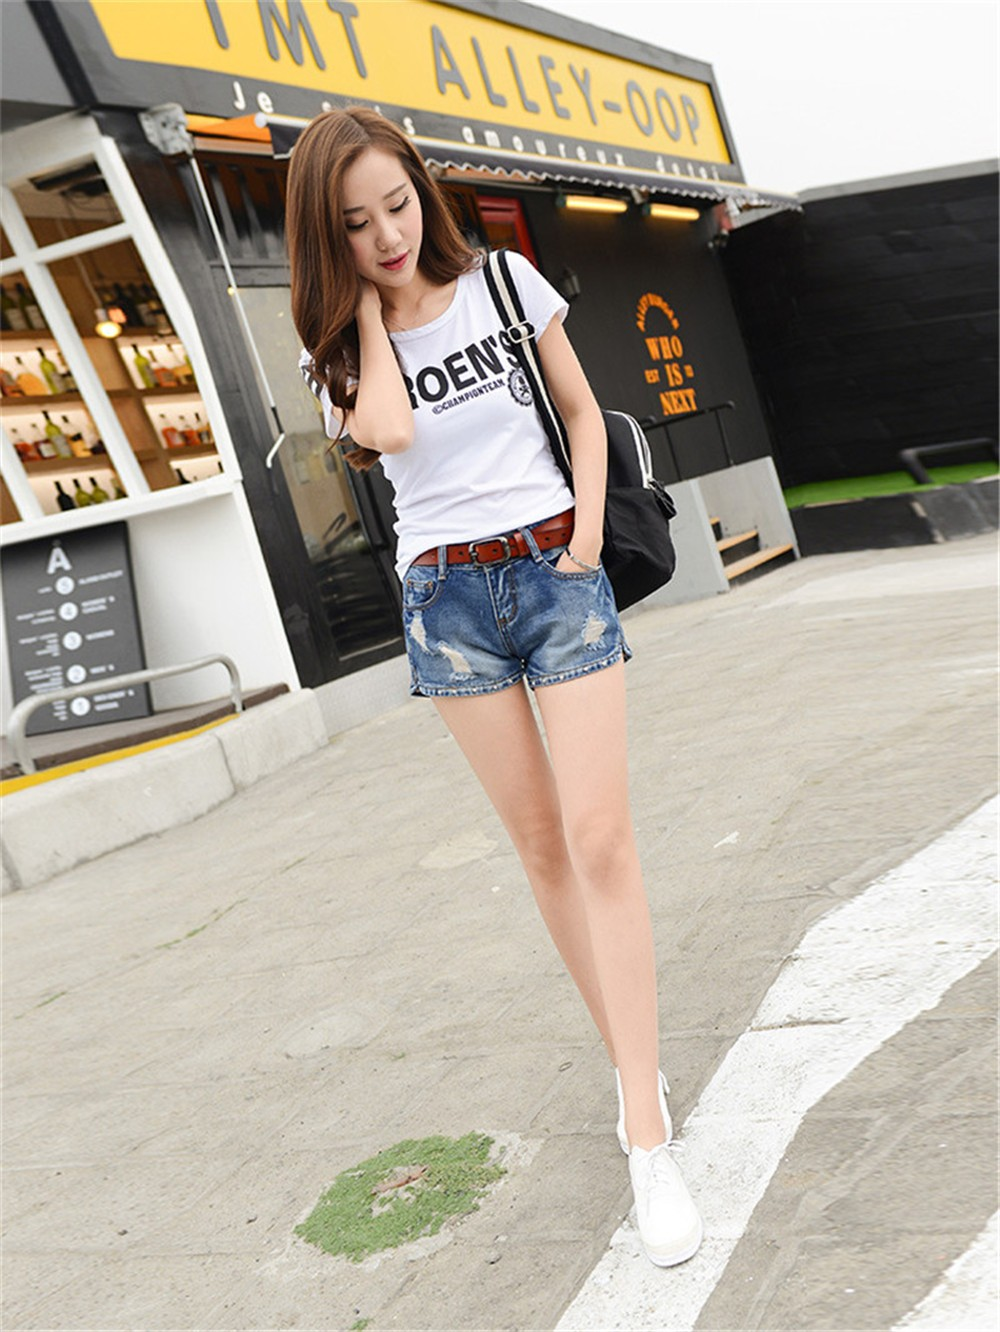 Mainland Retro Mid waist Women Short Jeans Woman Denim Female Wild Short-Pants Summer Loose Short Fashion Plus size Short jeans  (22)